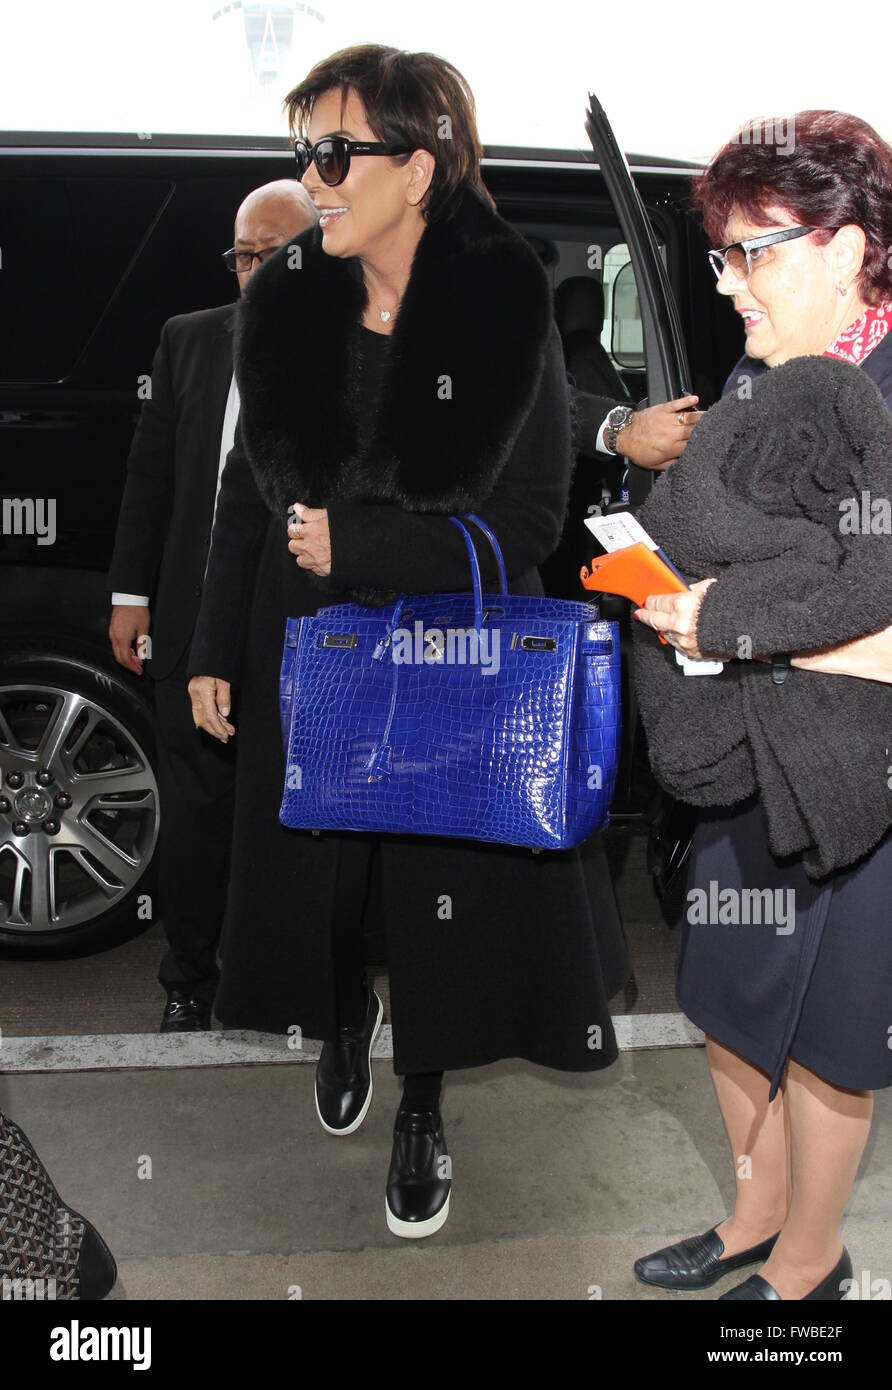 f1dfc34650ed09 Kris Jenner arrives at Los Angeles International (LAX) Airport Featuring:  Kris Jenner Where: Los Angeles, California, United States When: 02 Mar 2016